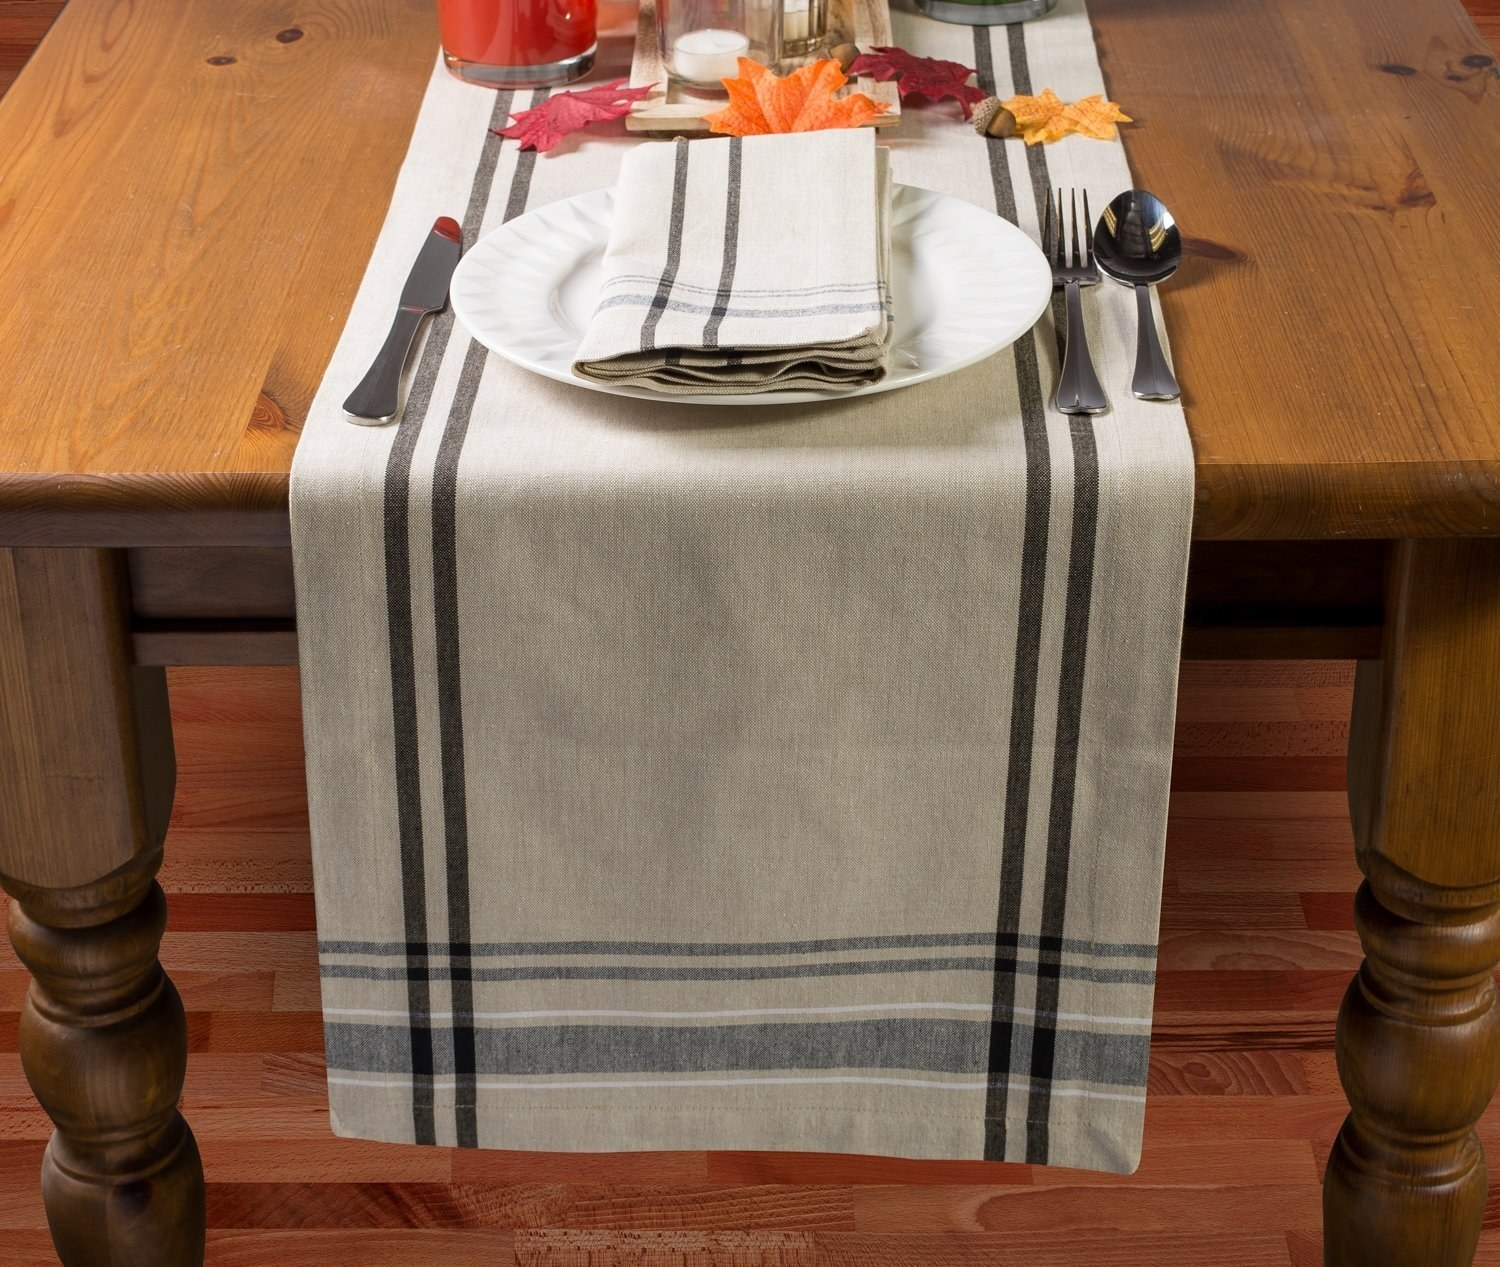 wood dining table with burlap stripe runner on it